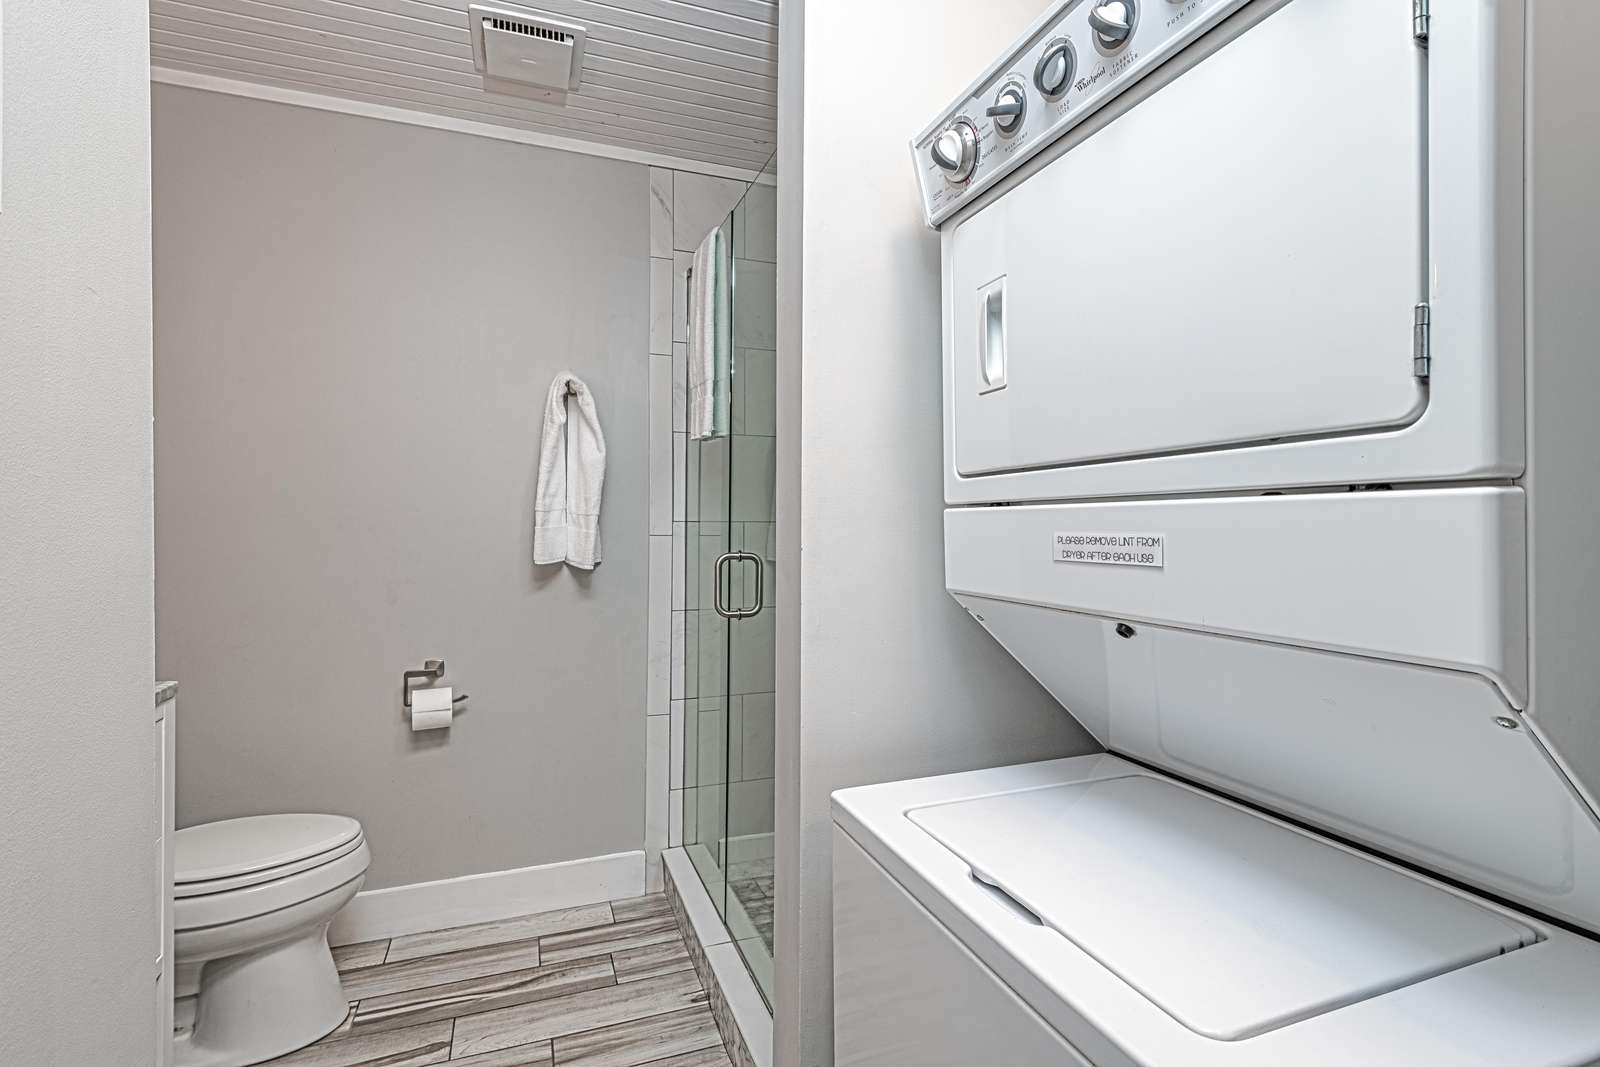 Stackable washer/dryer available for use!